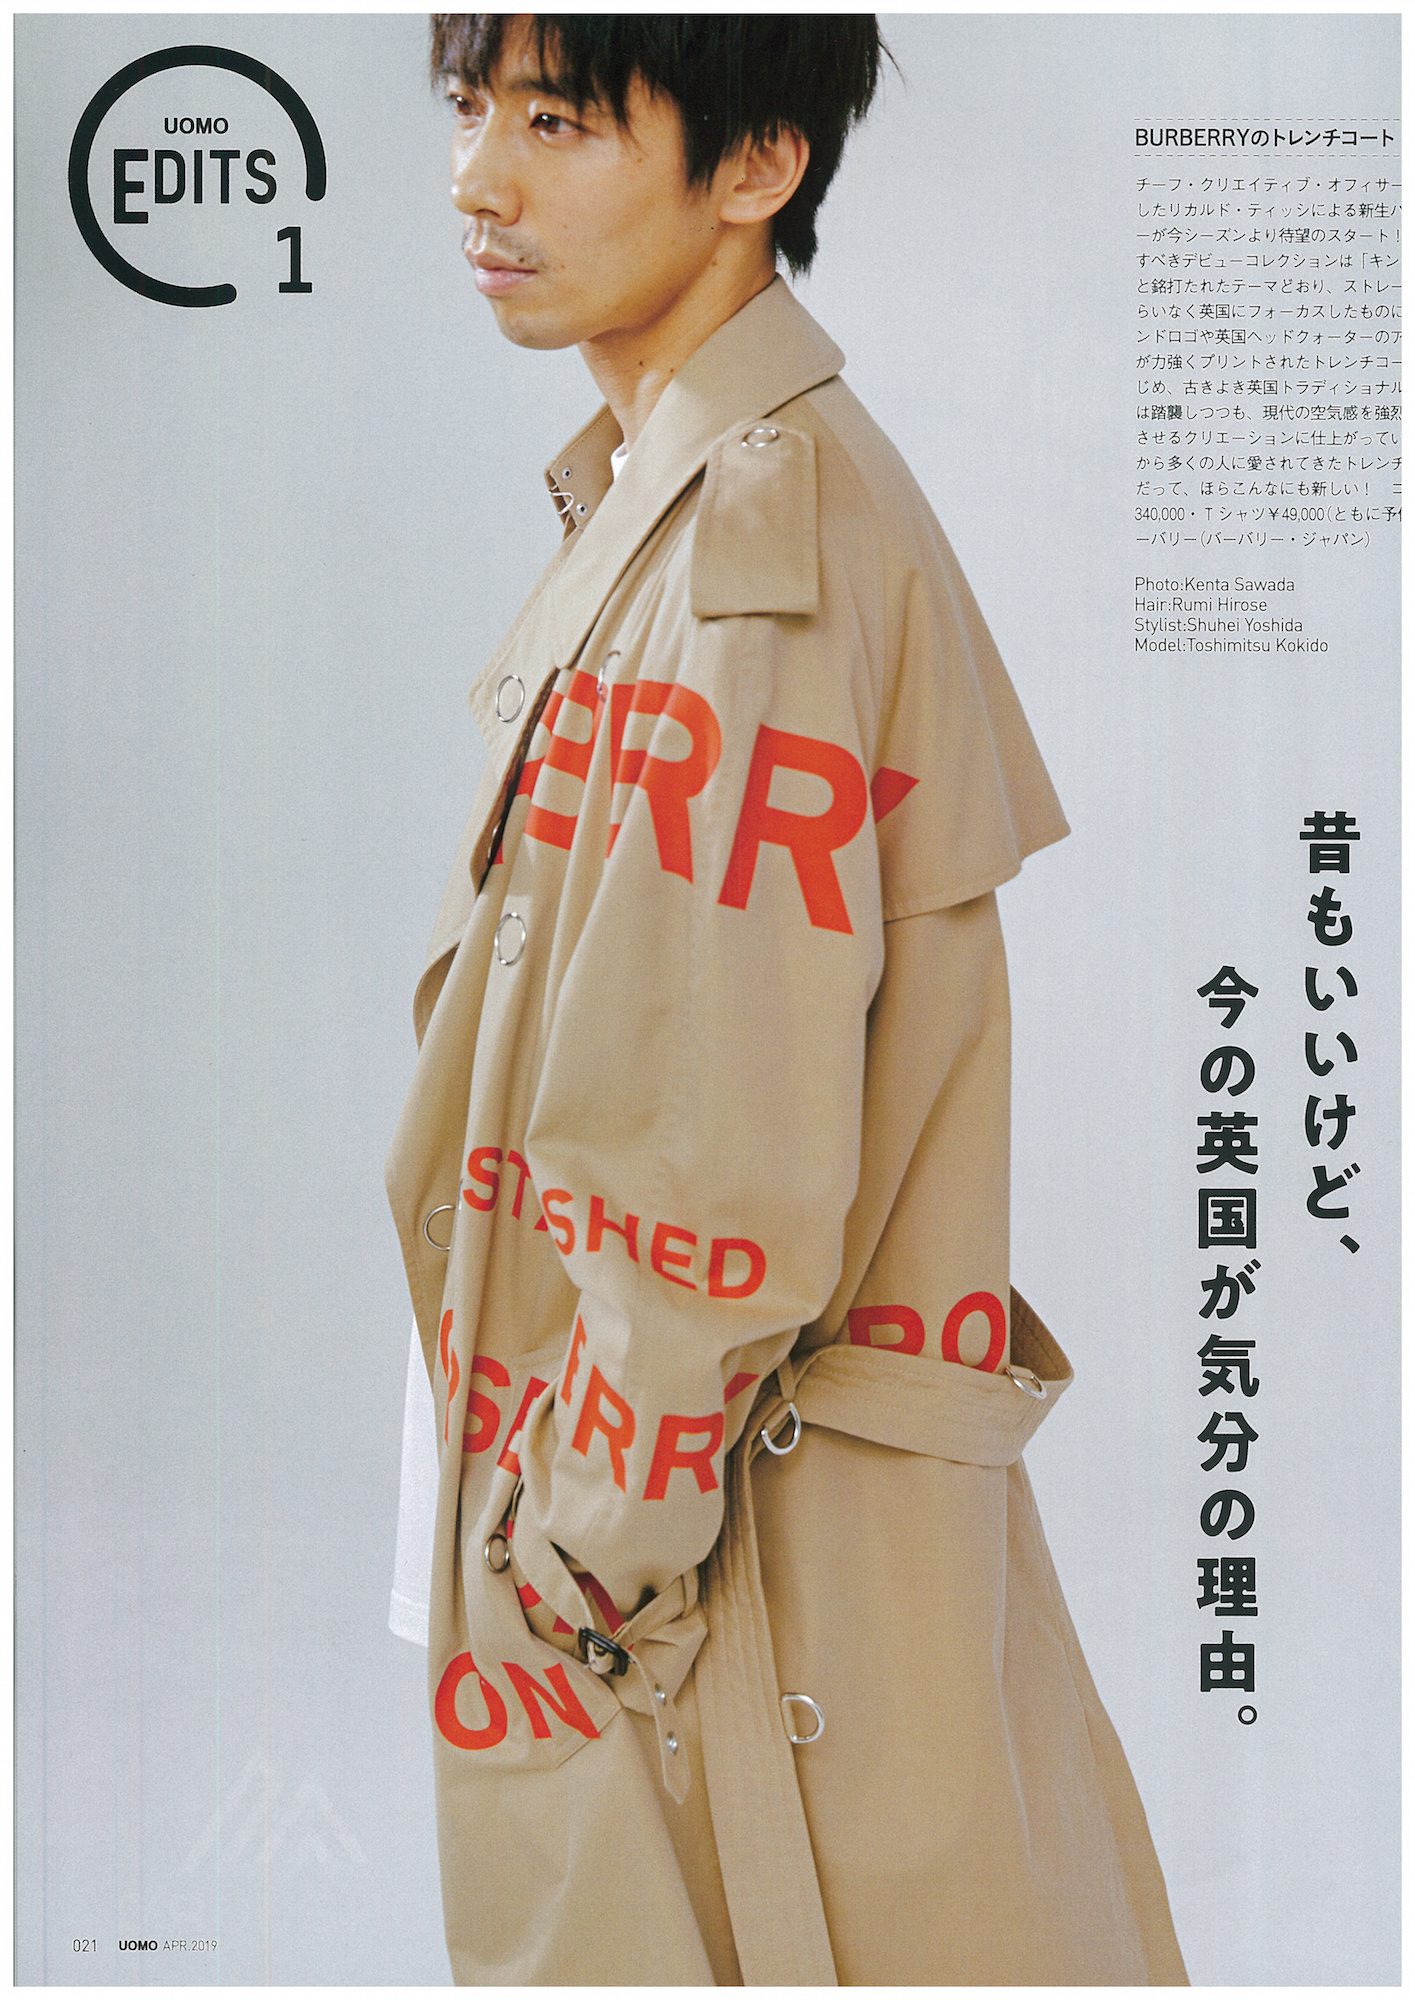 BURBERRY , UOMO April 2019